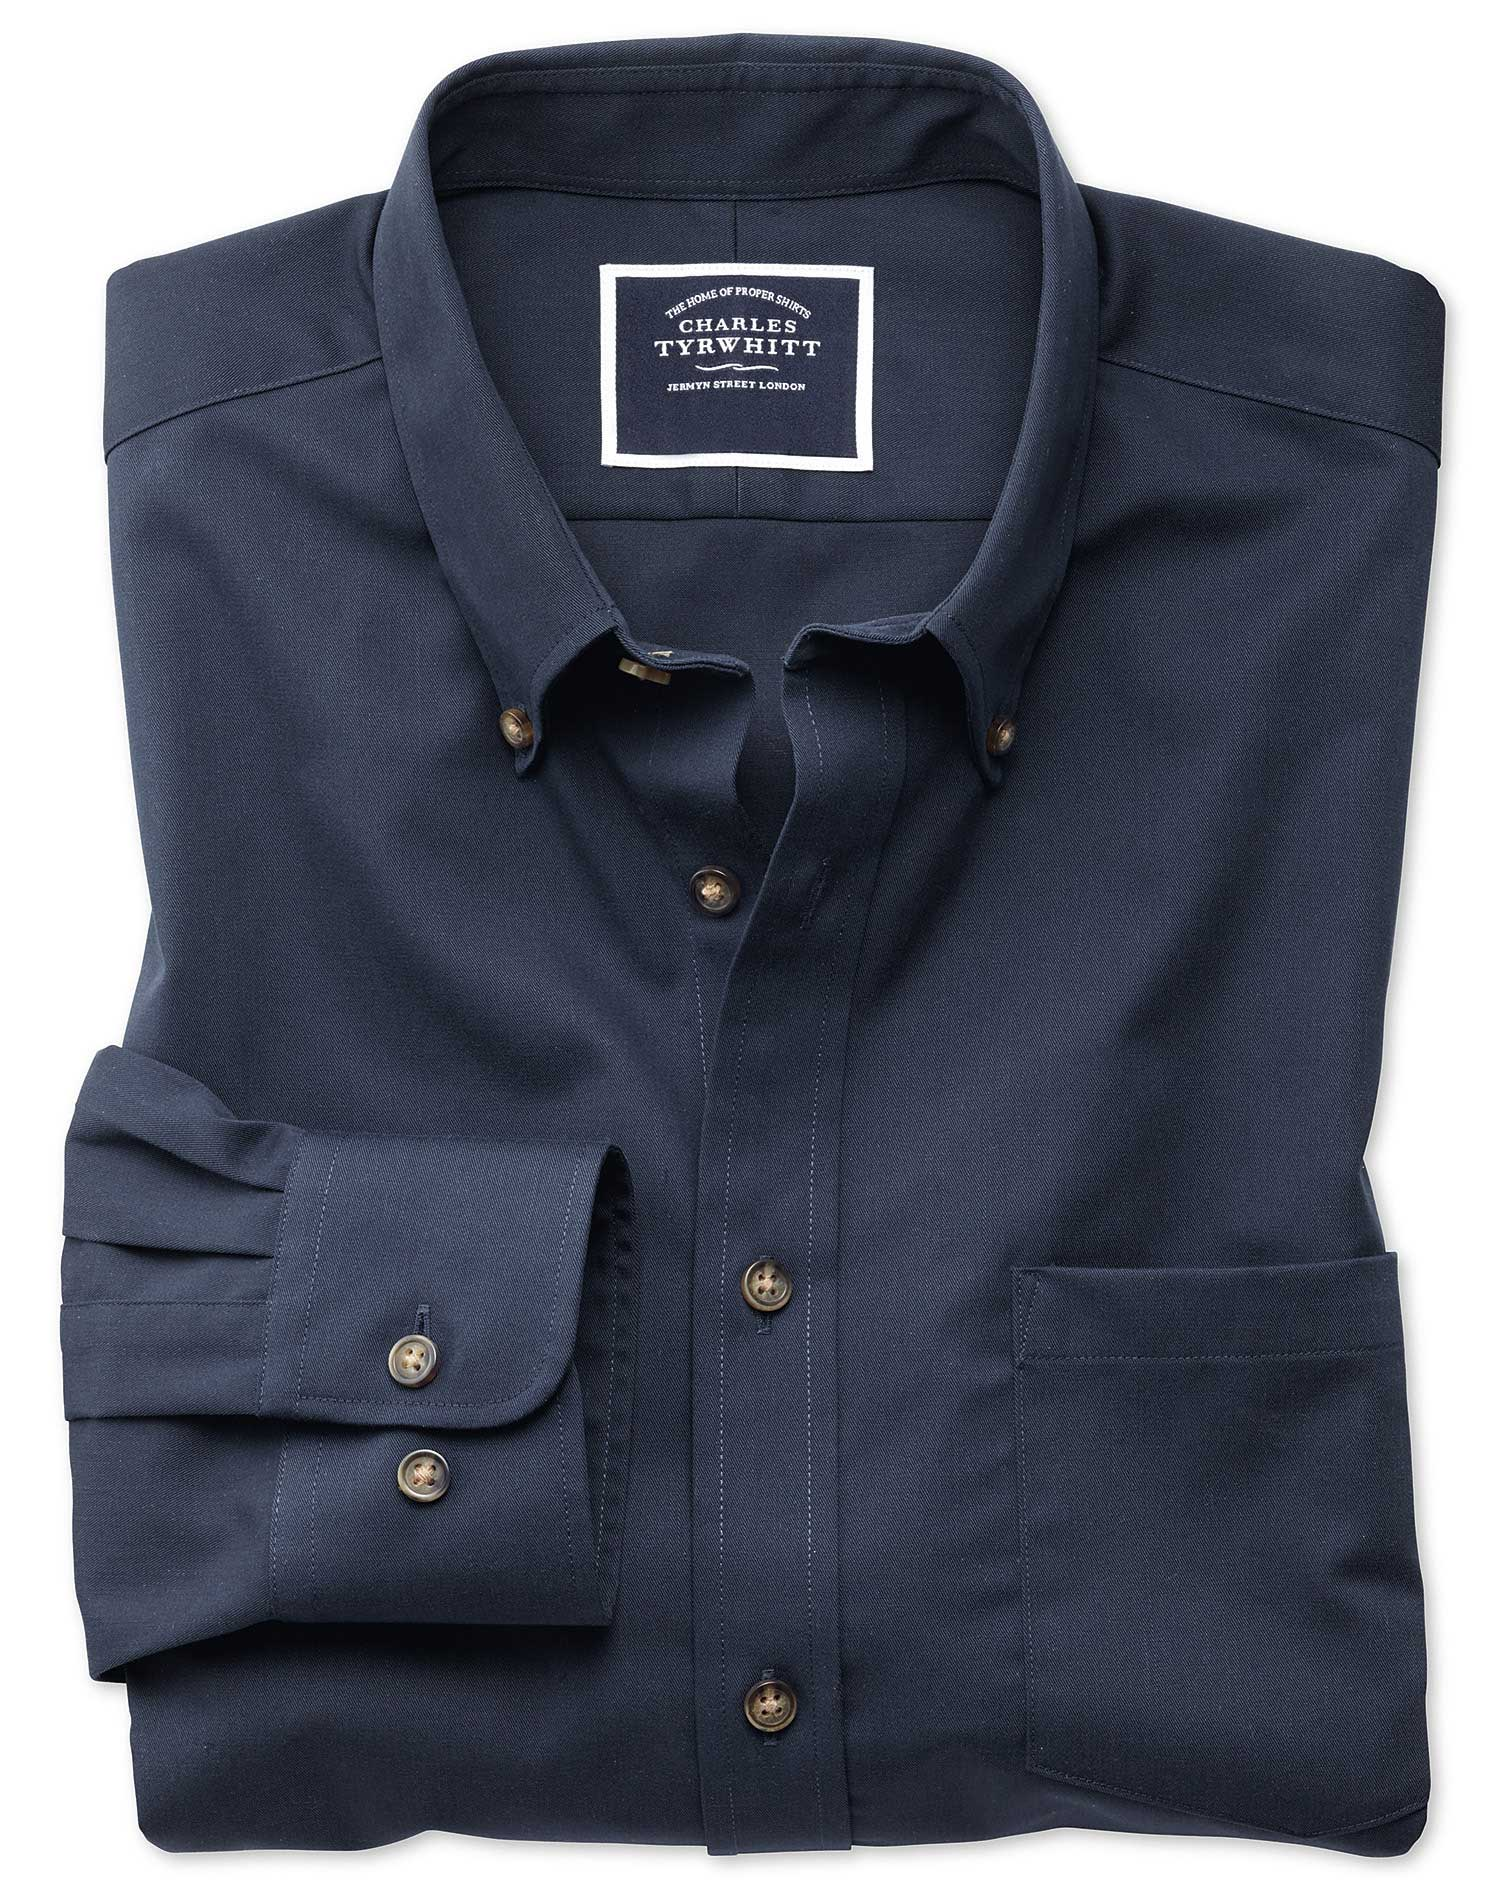 Classic Fit Button-Down Non-Iron Twill Navy Cotton Shirt Single Cuff Size XXL by Charles Tyrwhitt